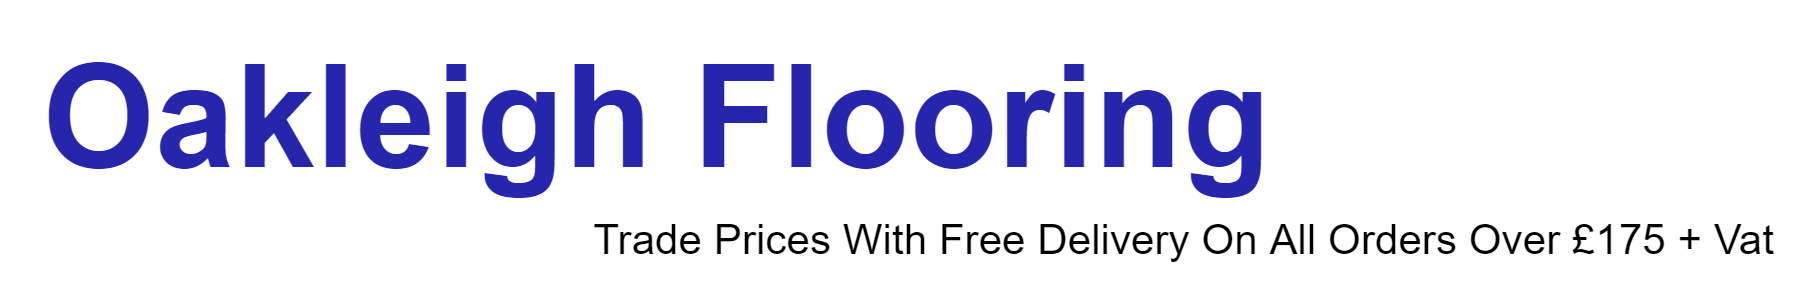 Oakleigh Flooring Ltd